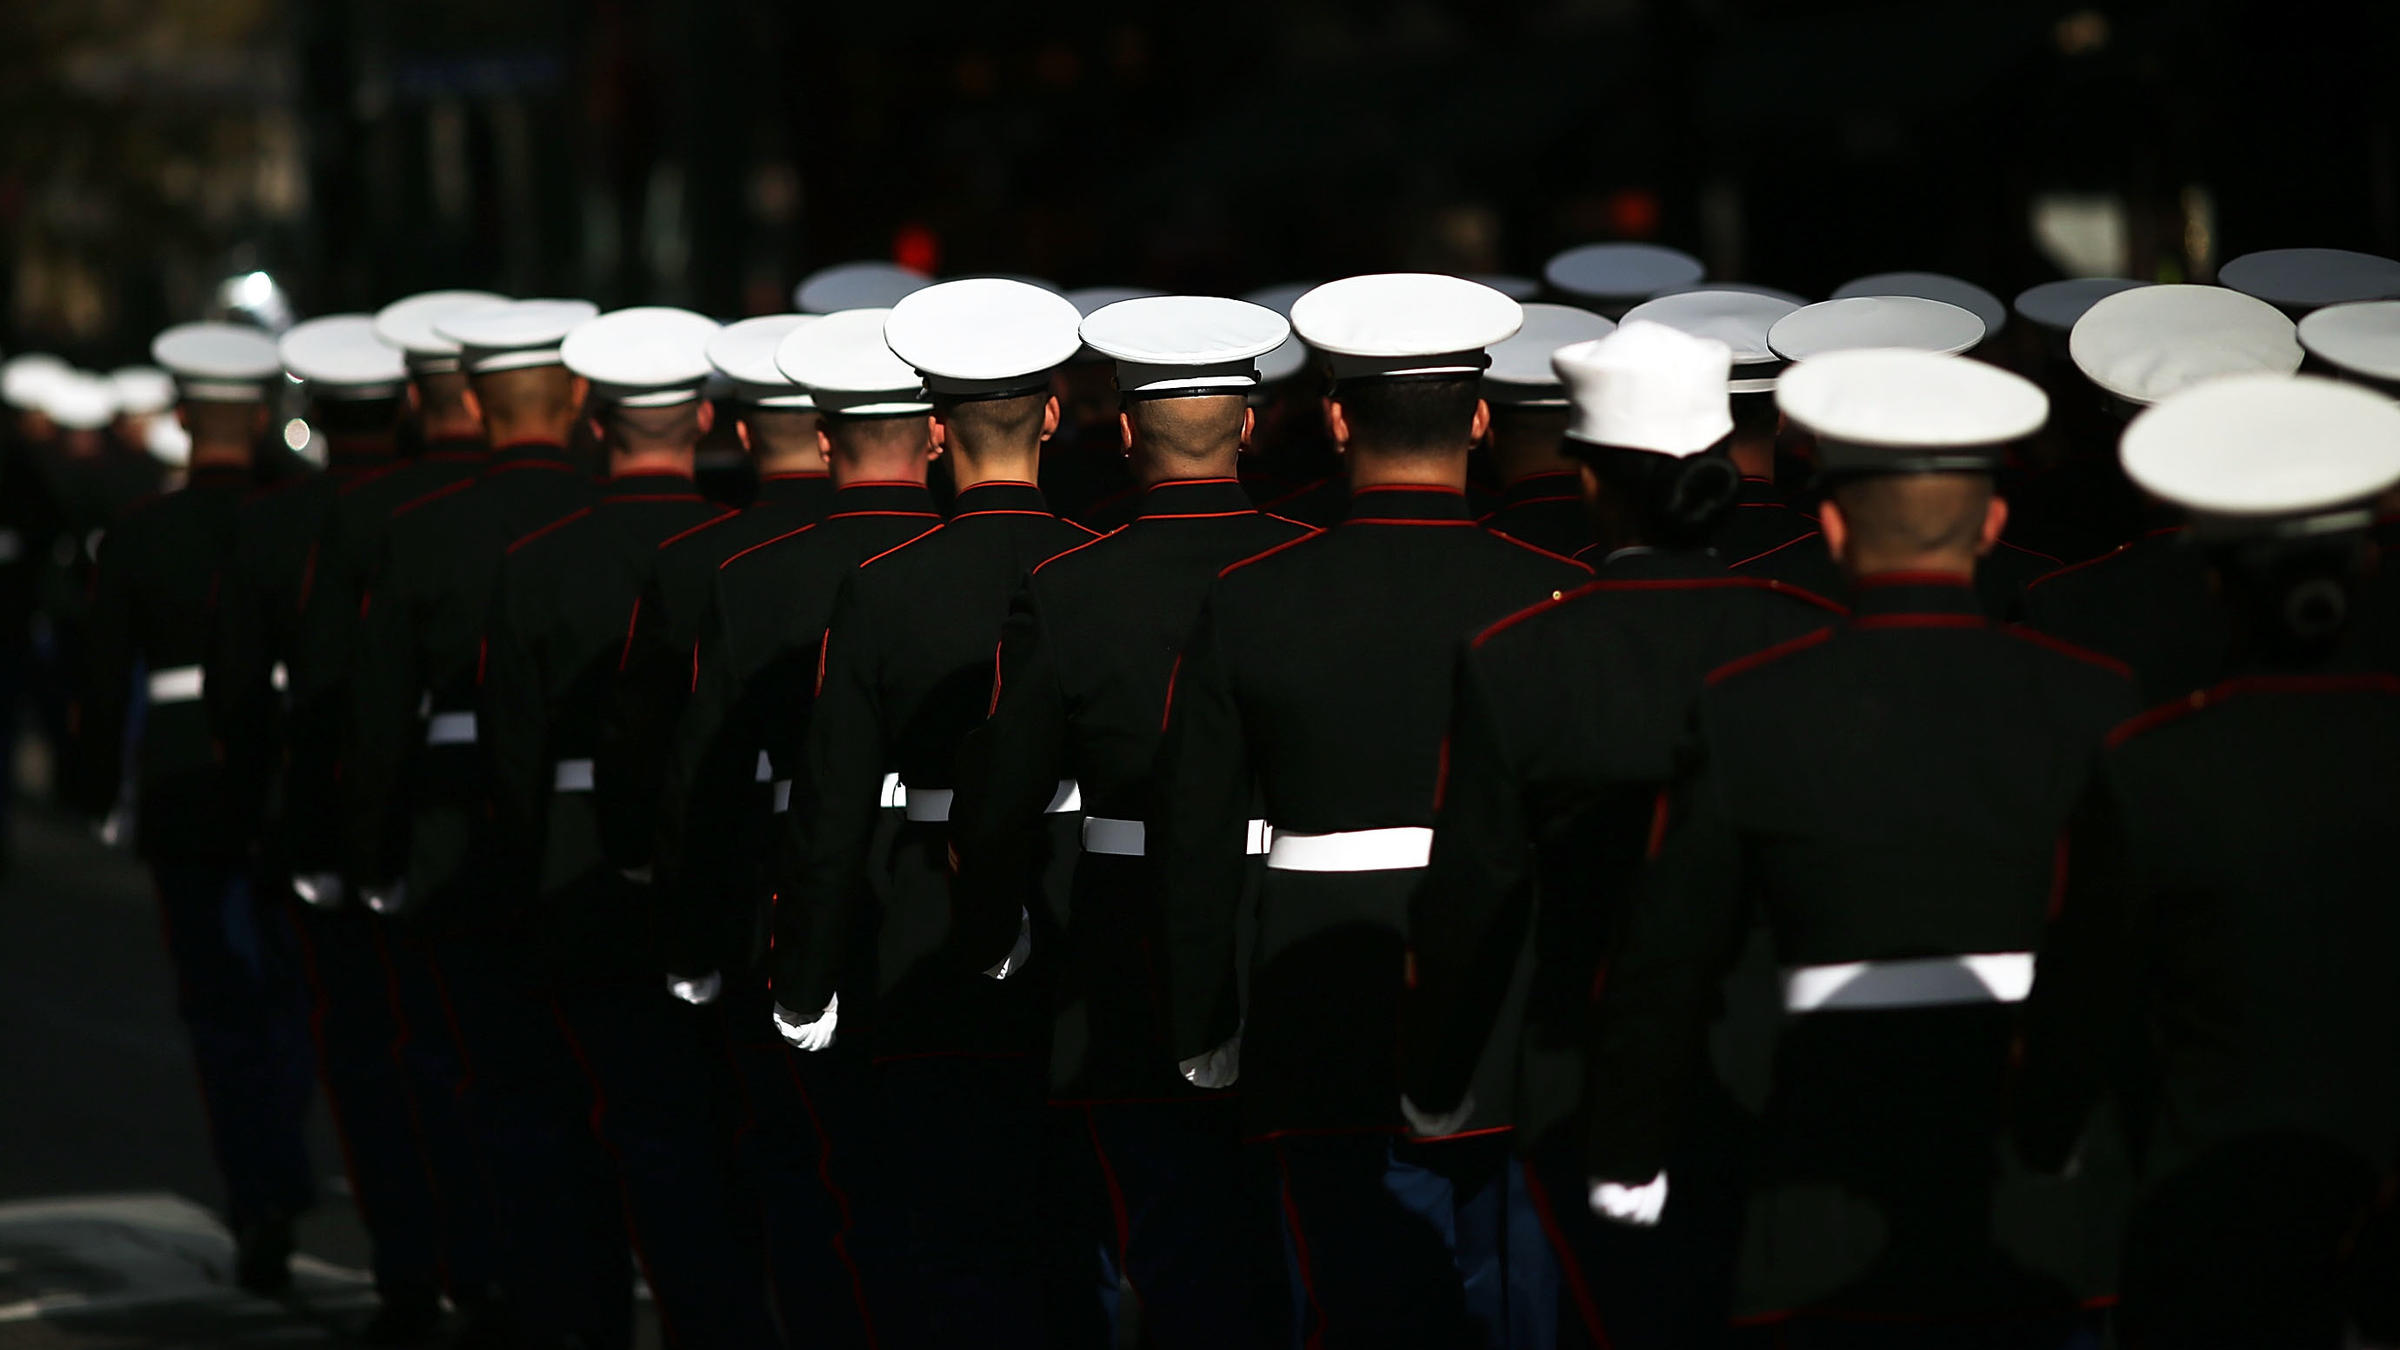 Dating a former marine with ptsd